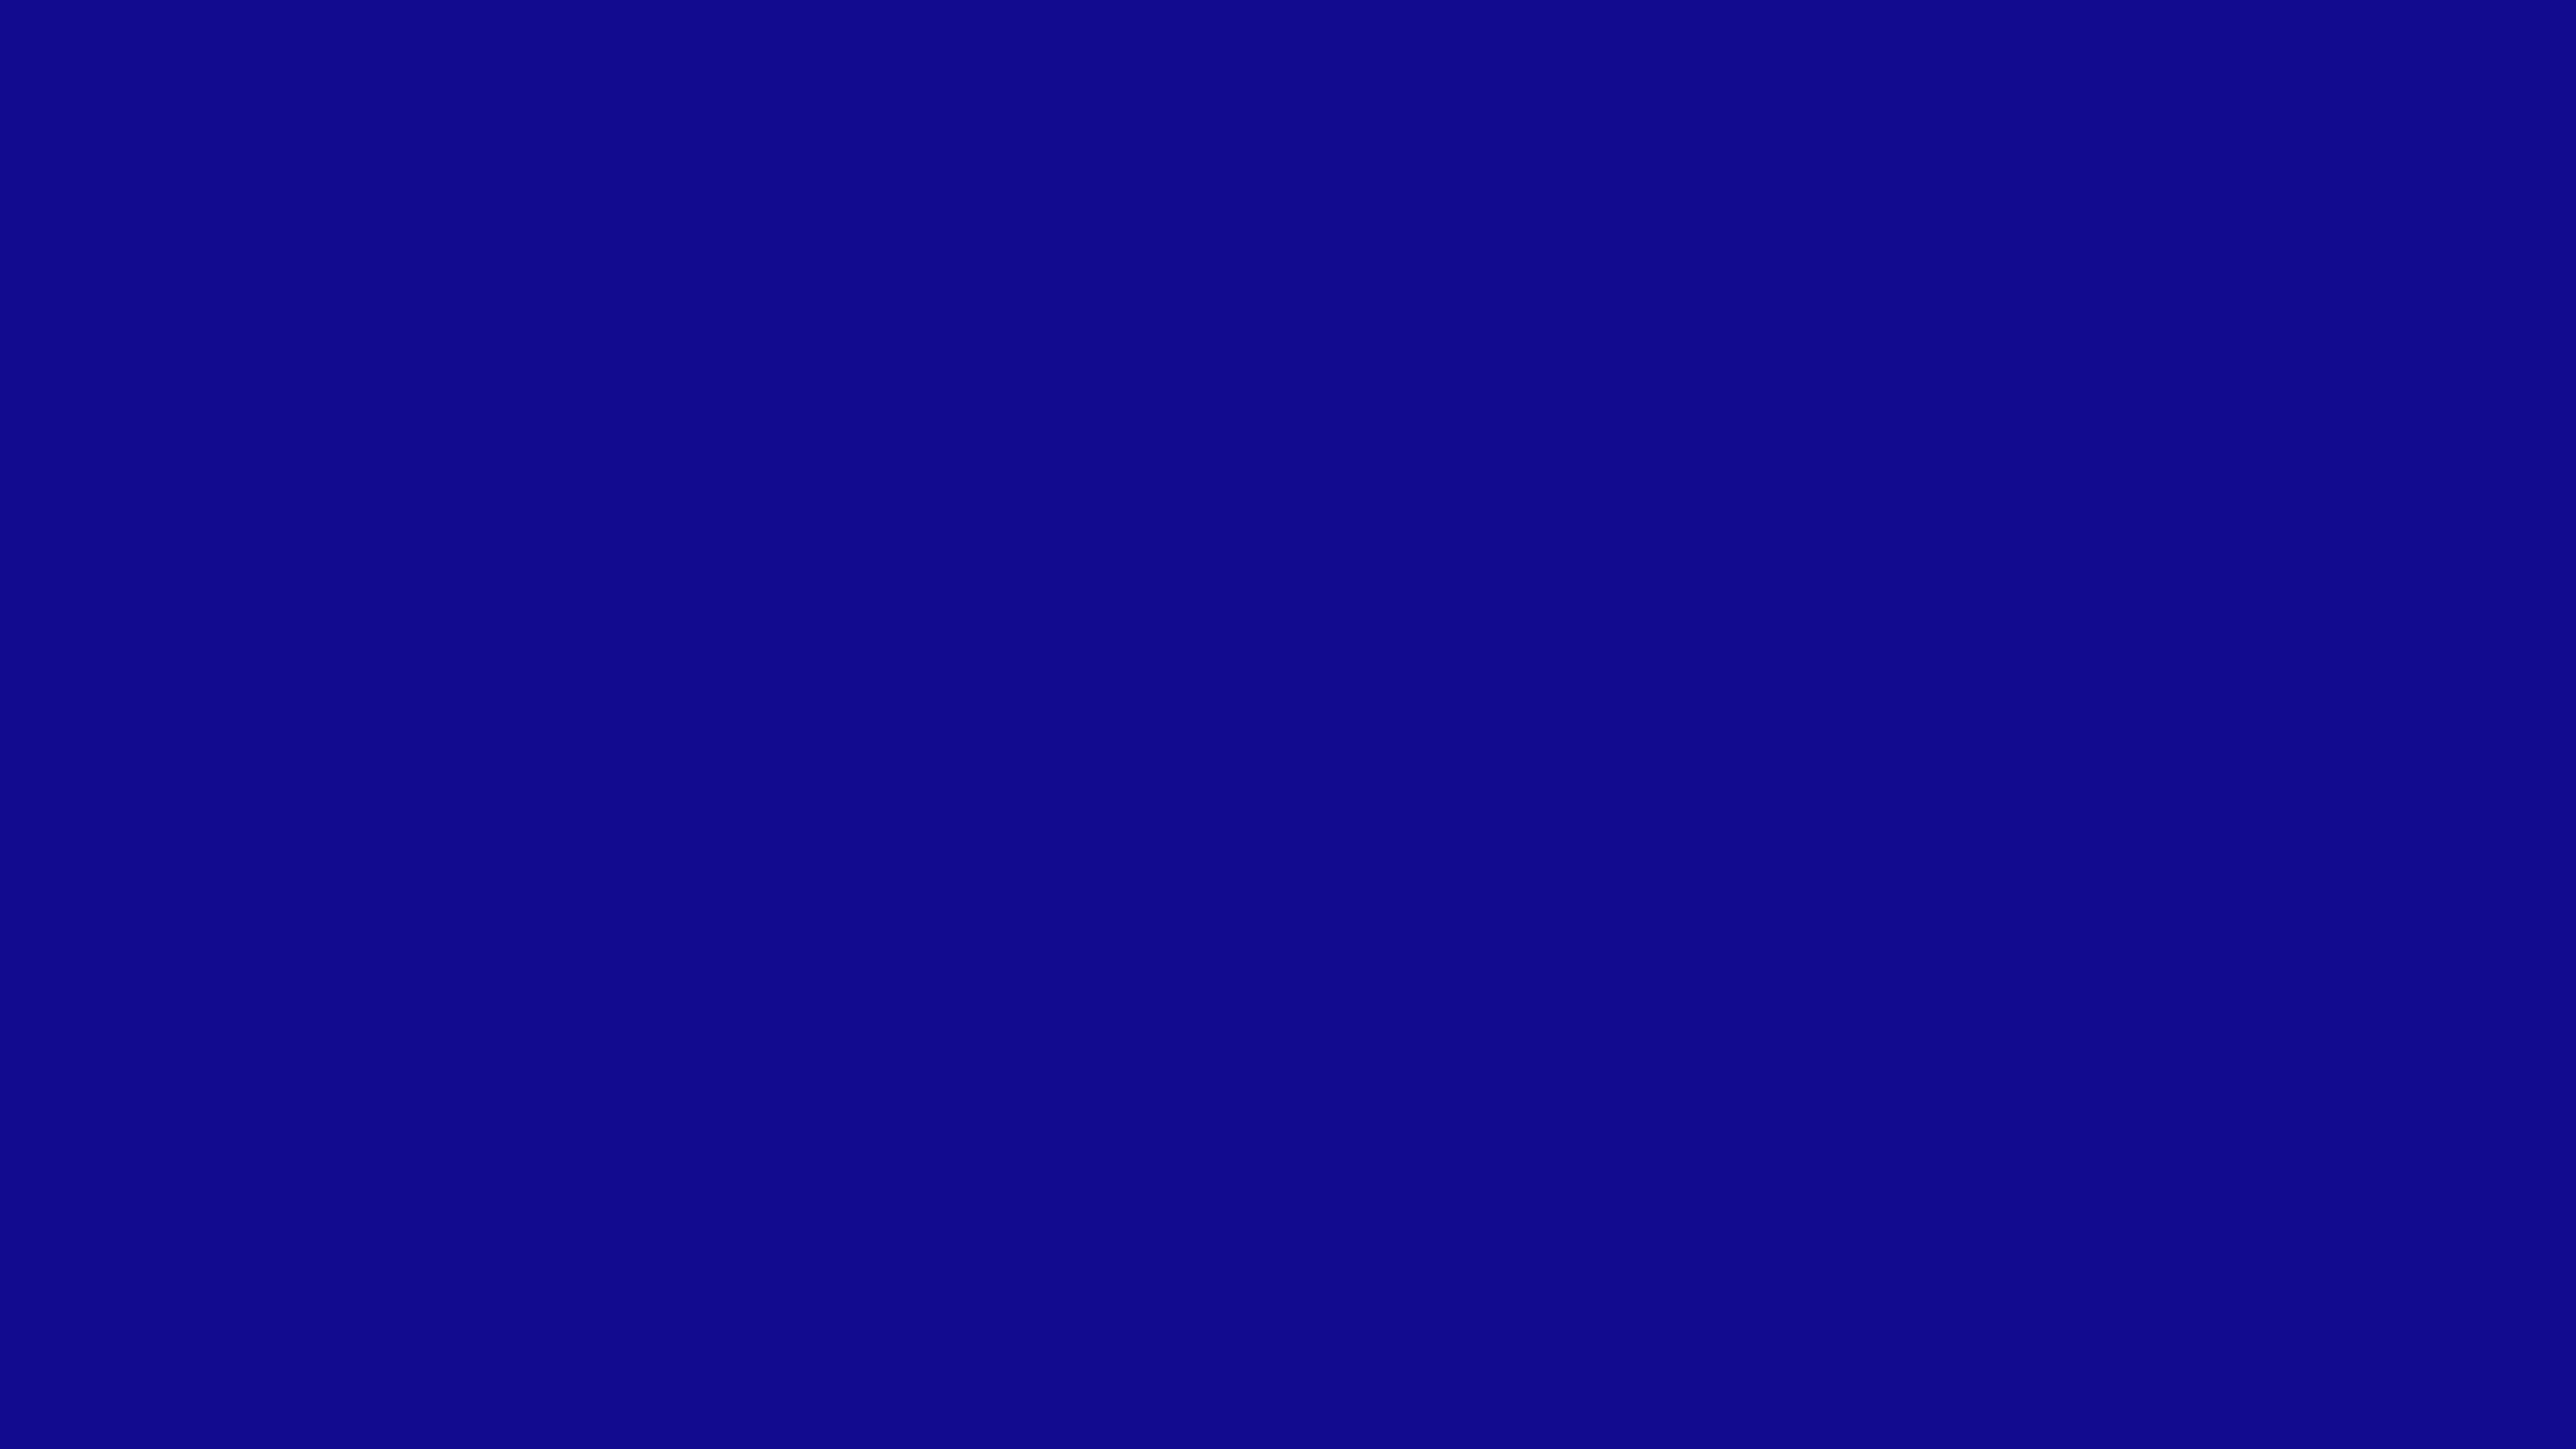 5120x2880 Ultramarine Solid Color Background